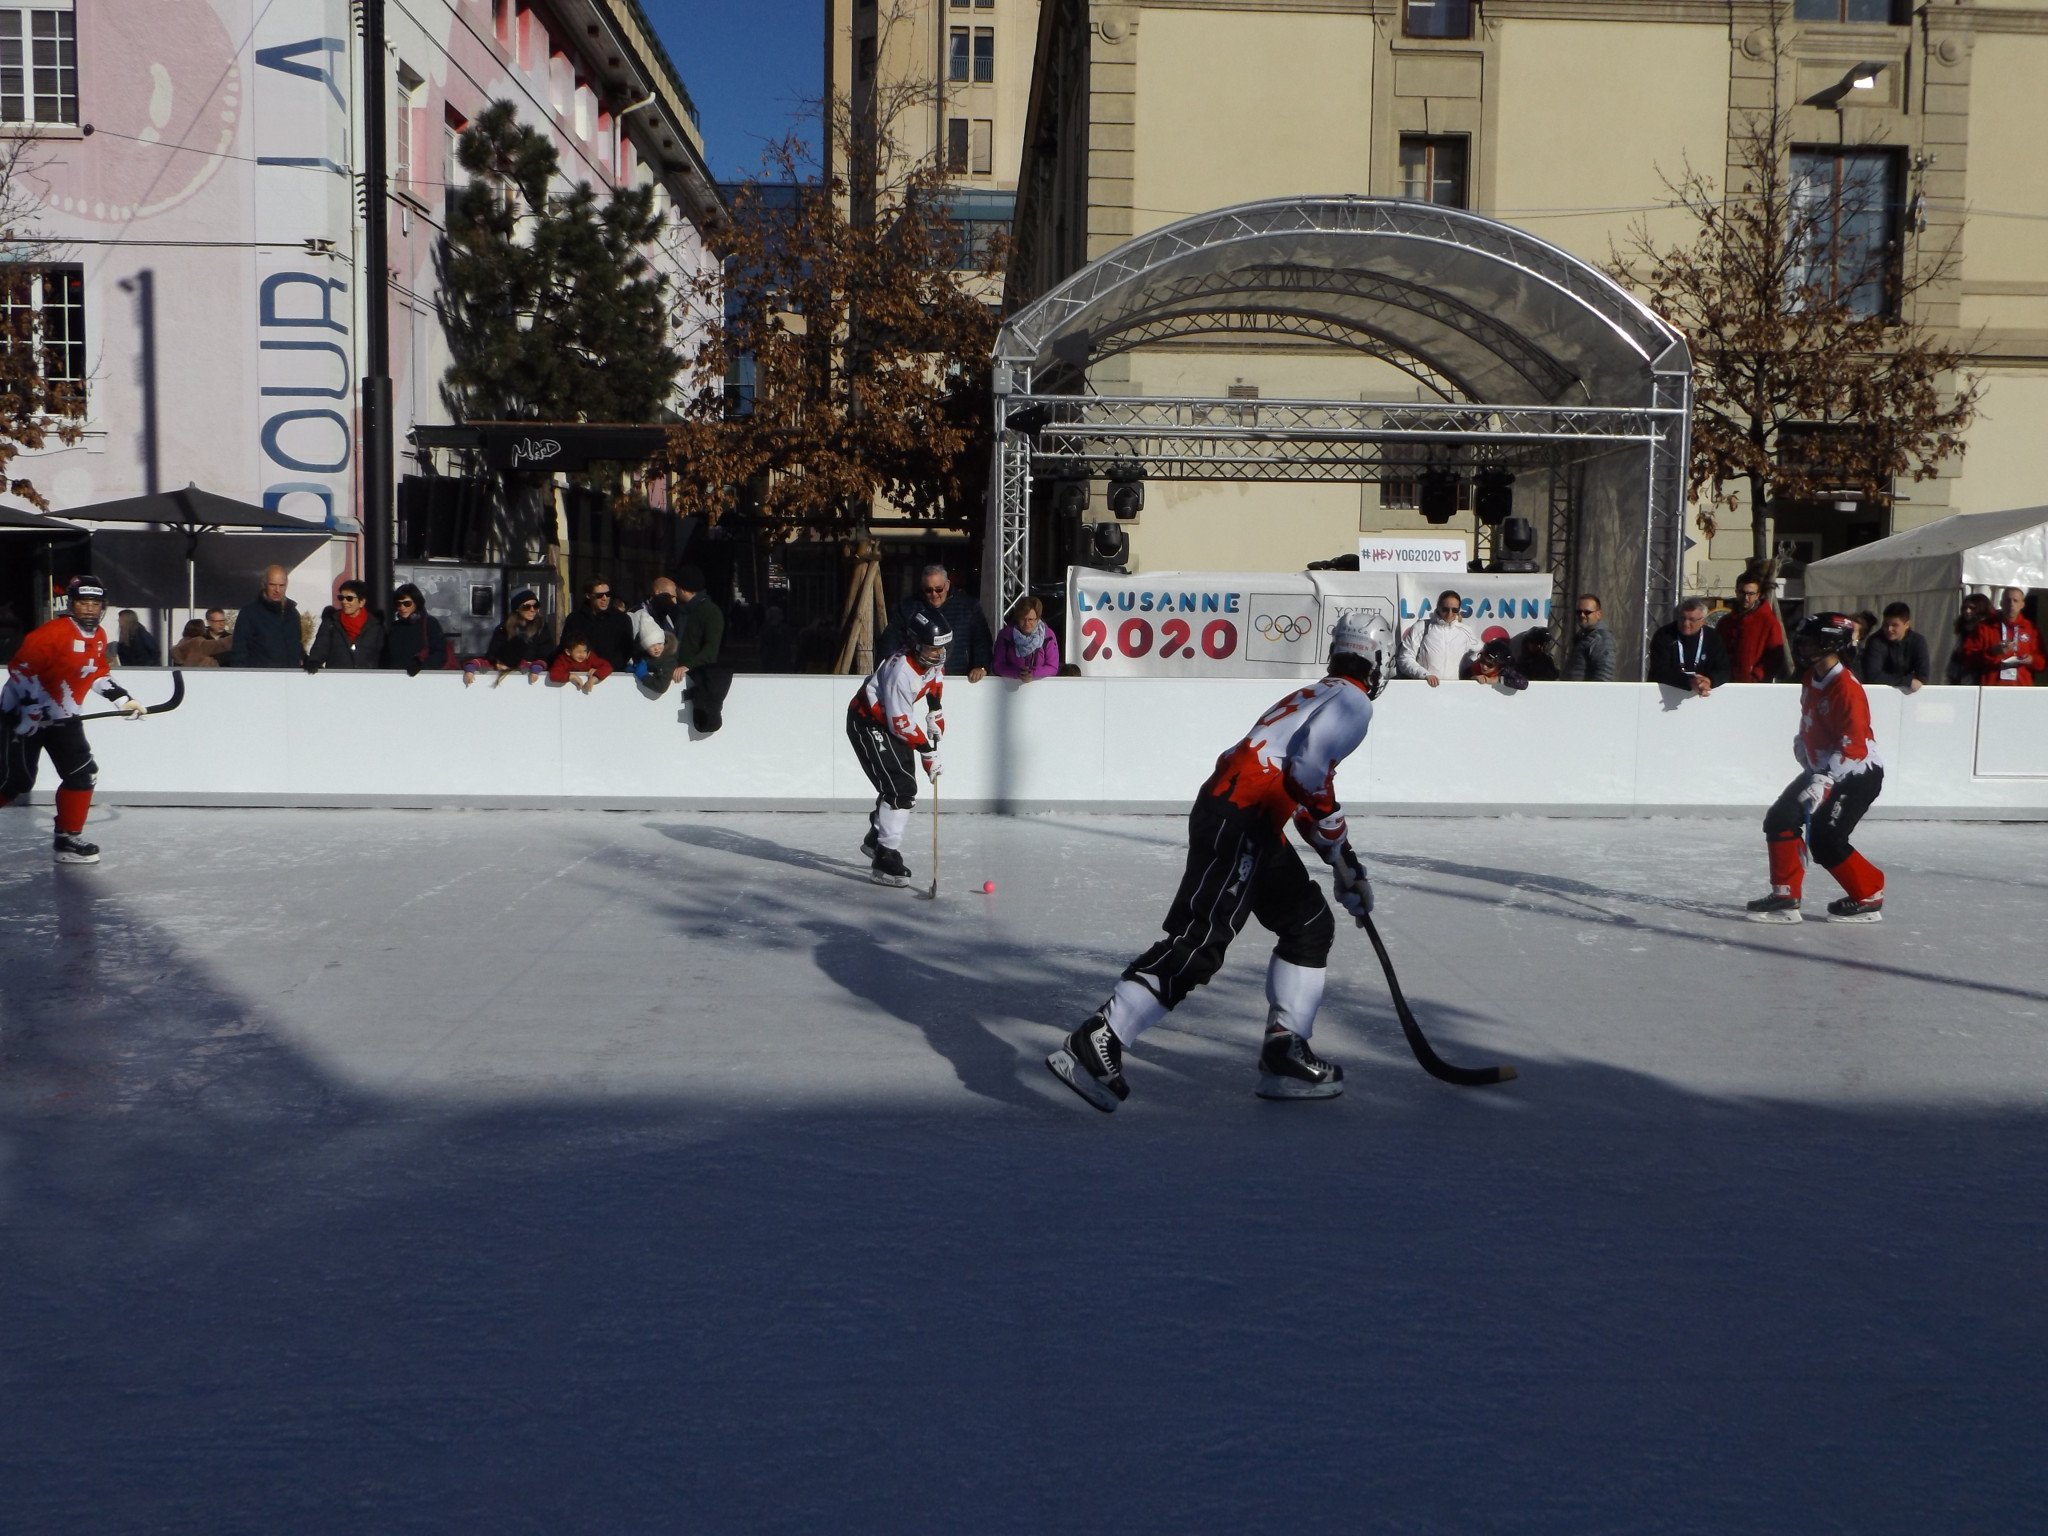 Bandy is hoping for full Olympic inclusion at Milan-Cortina 2026 ©ITG